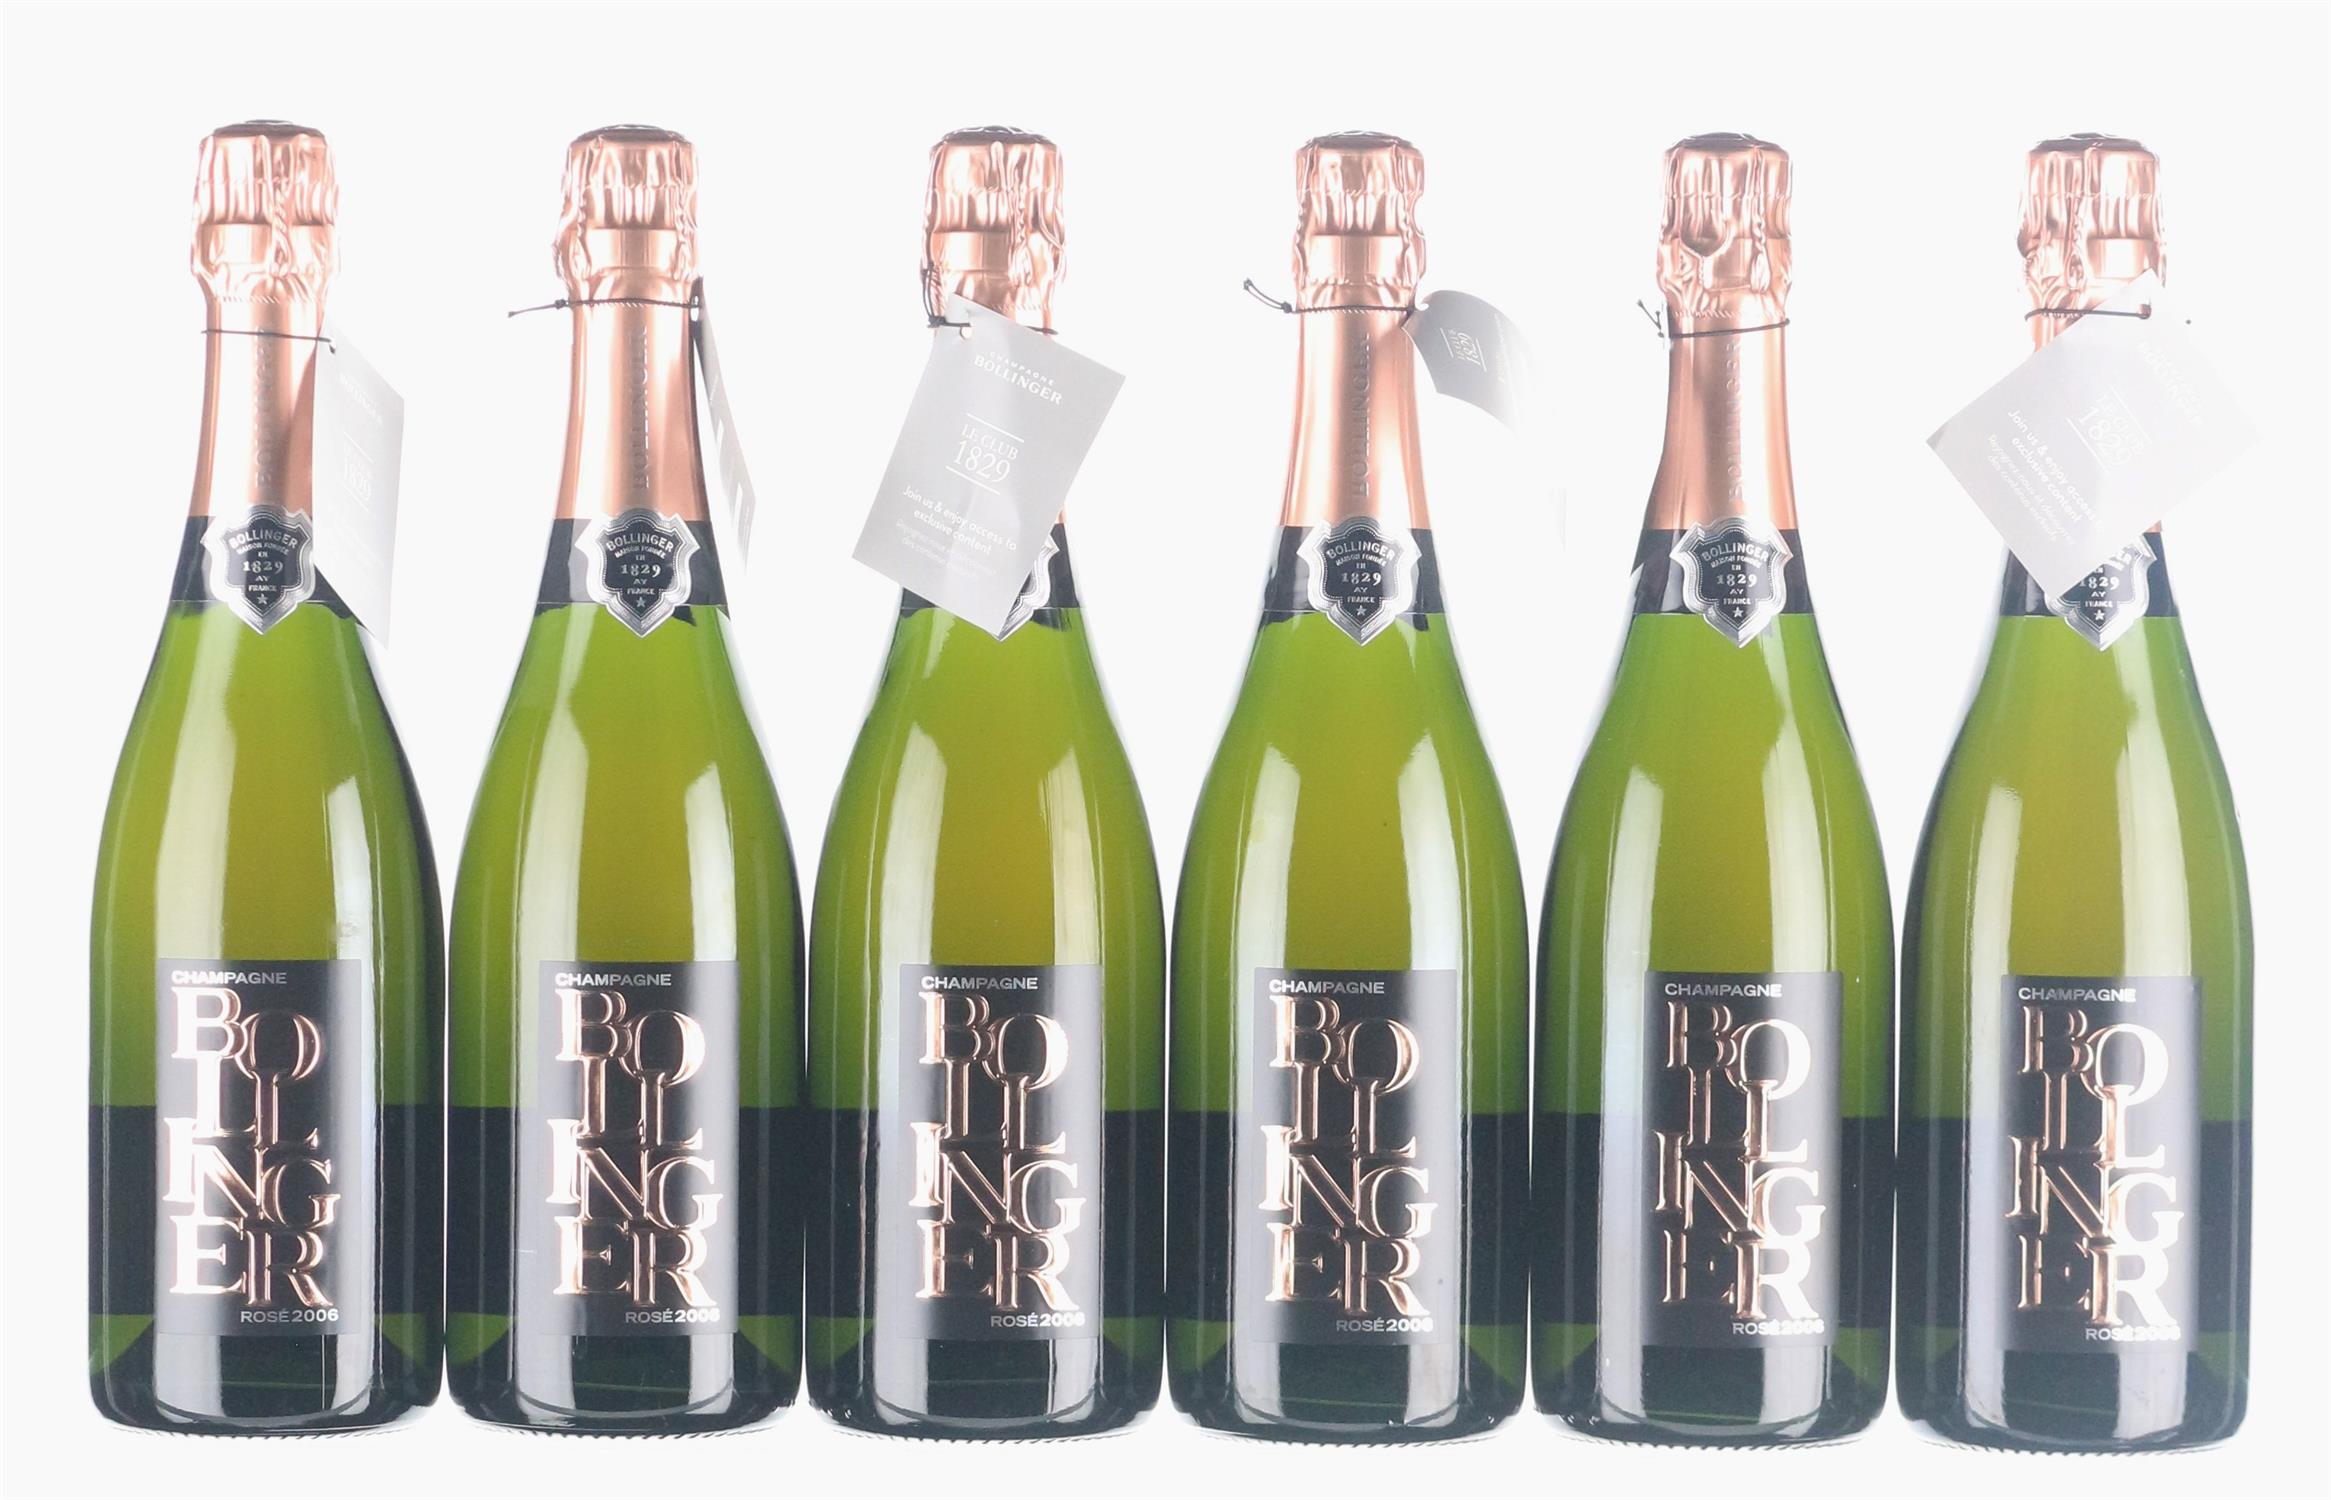 Lot 31 - 2006 Bollinger Rose Limited Edition